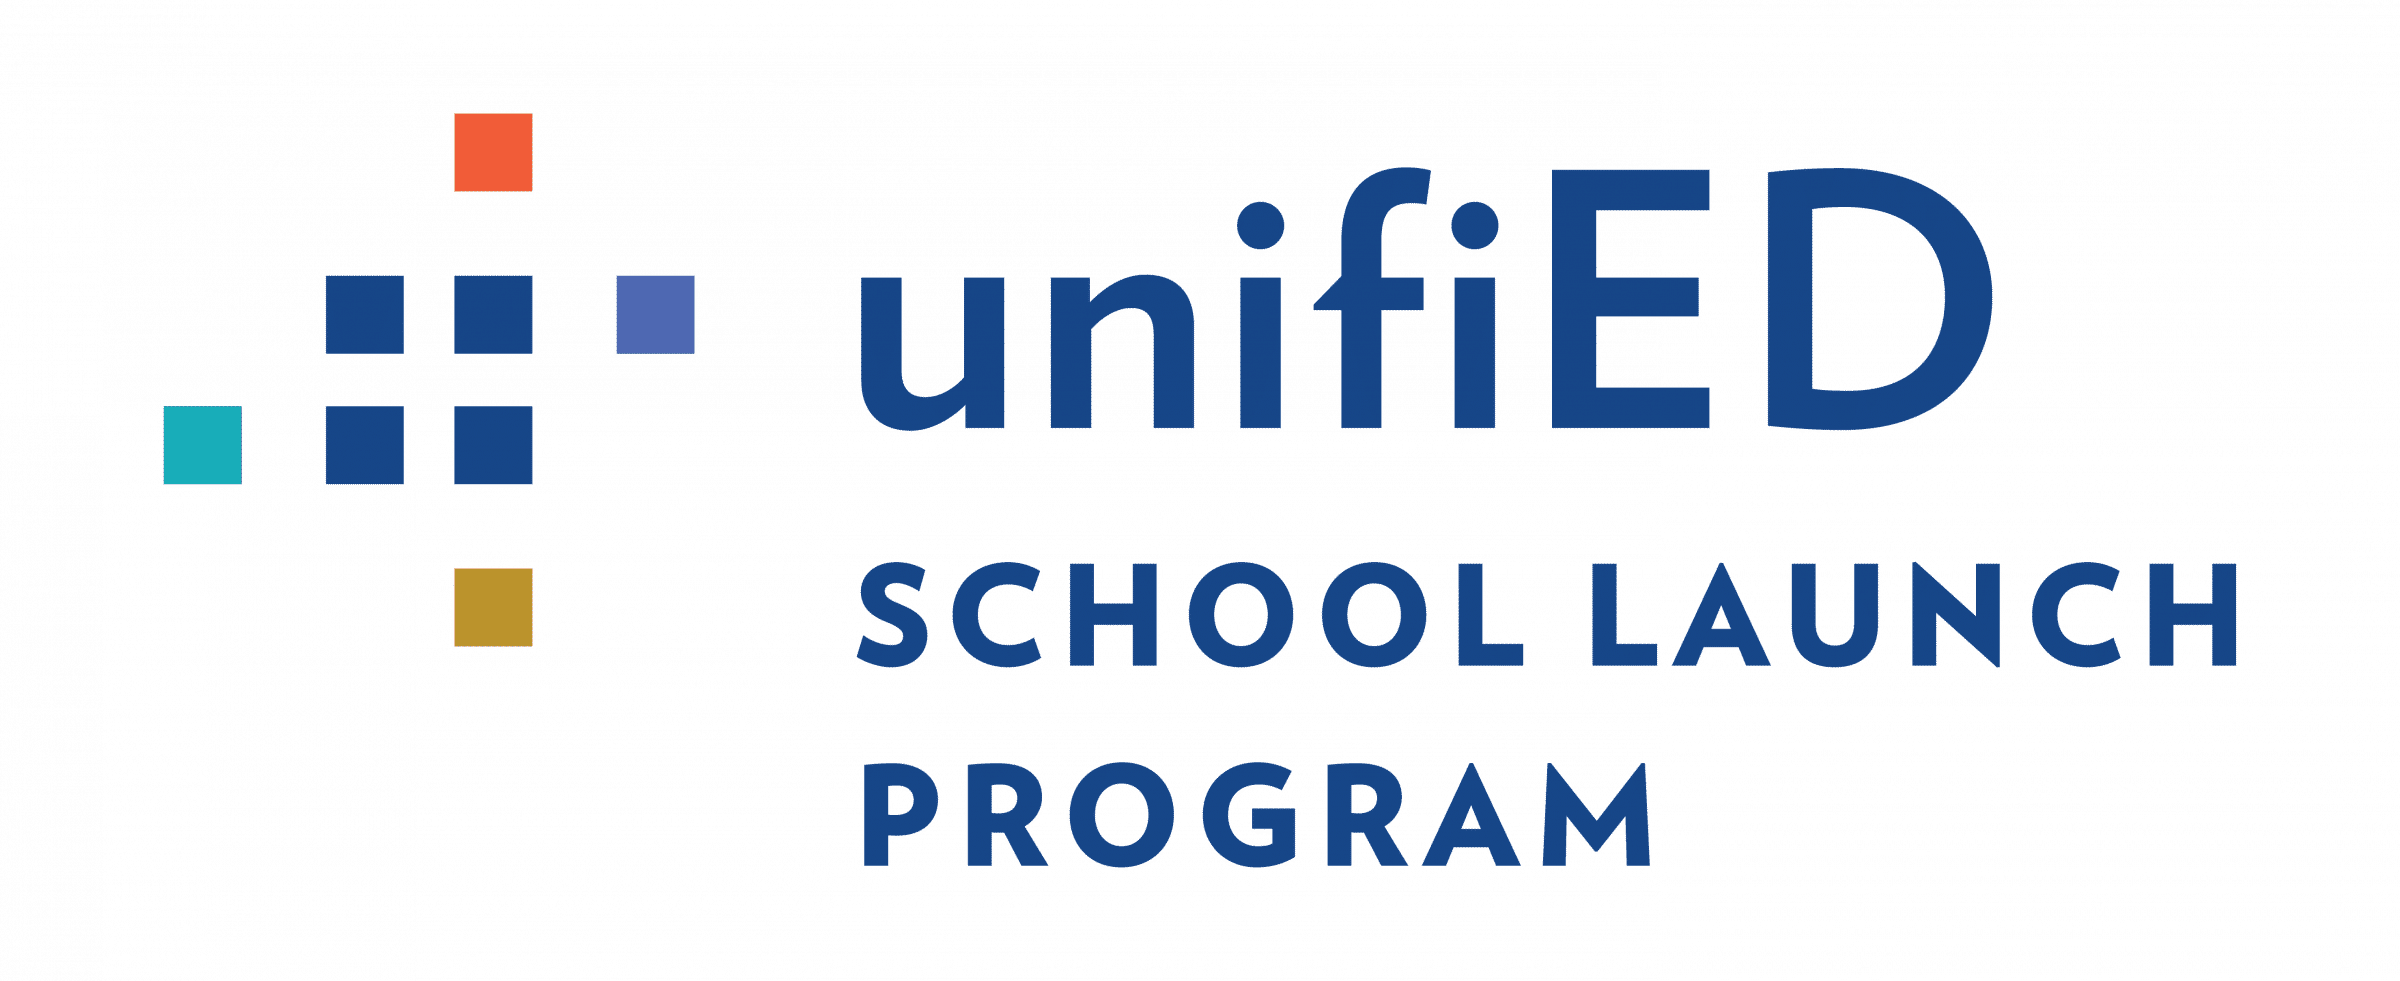 unifiED School Launch Program